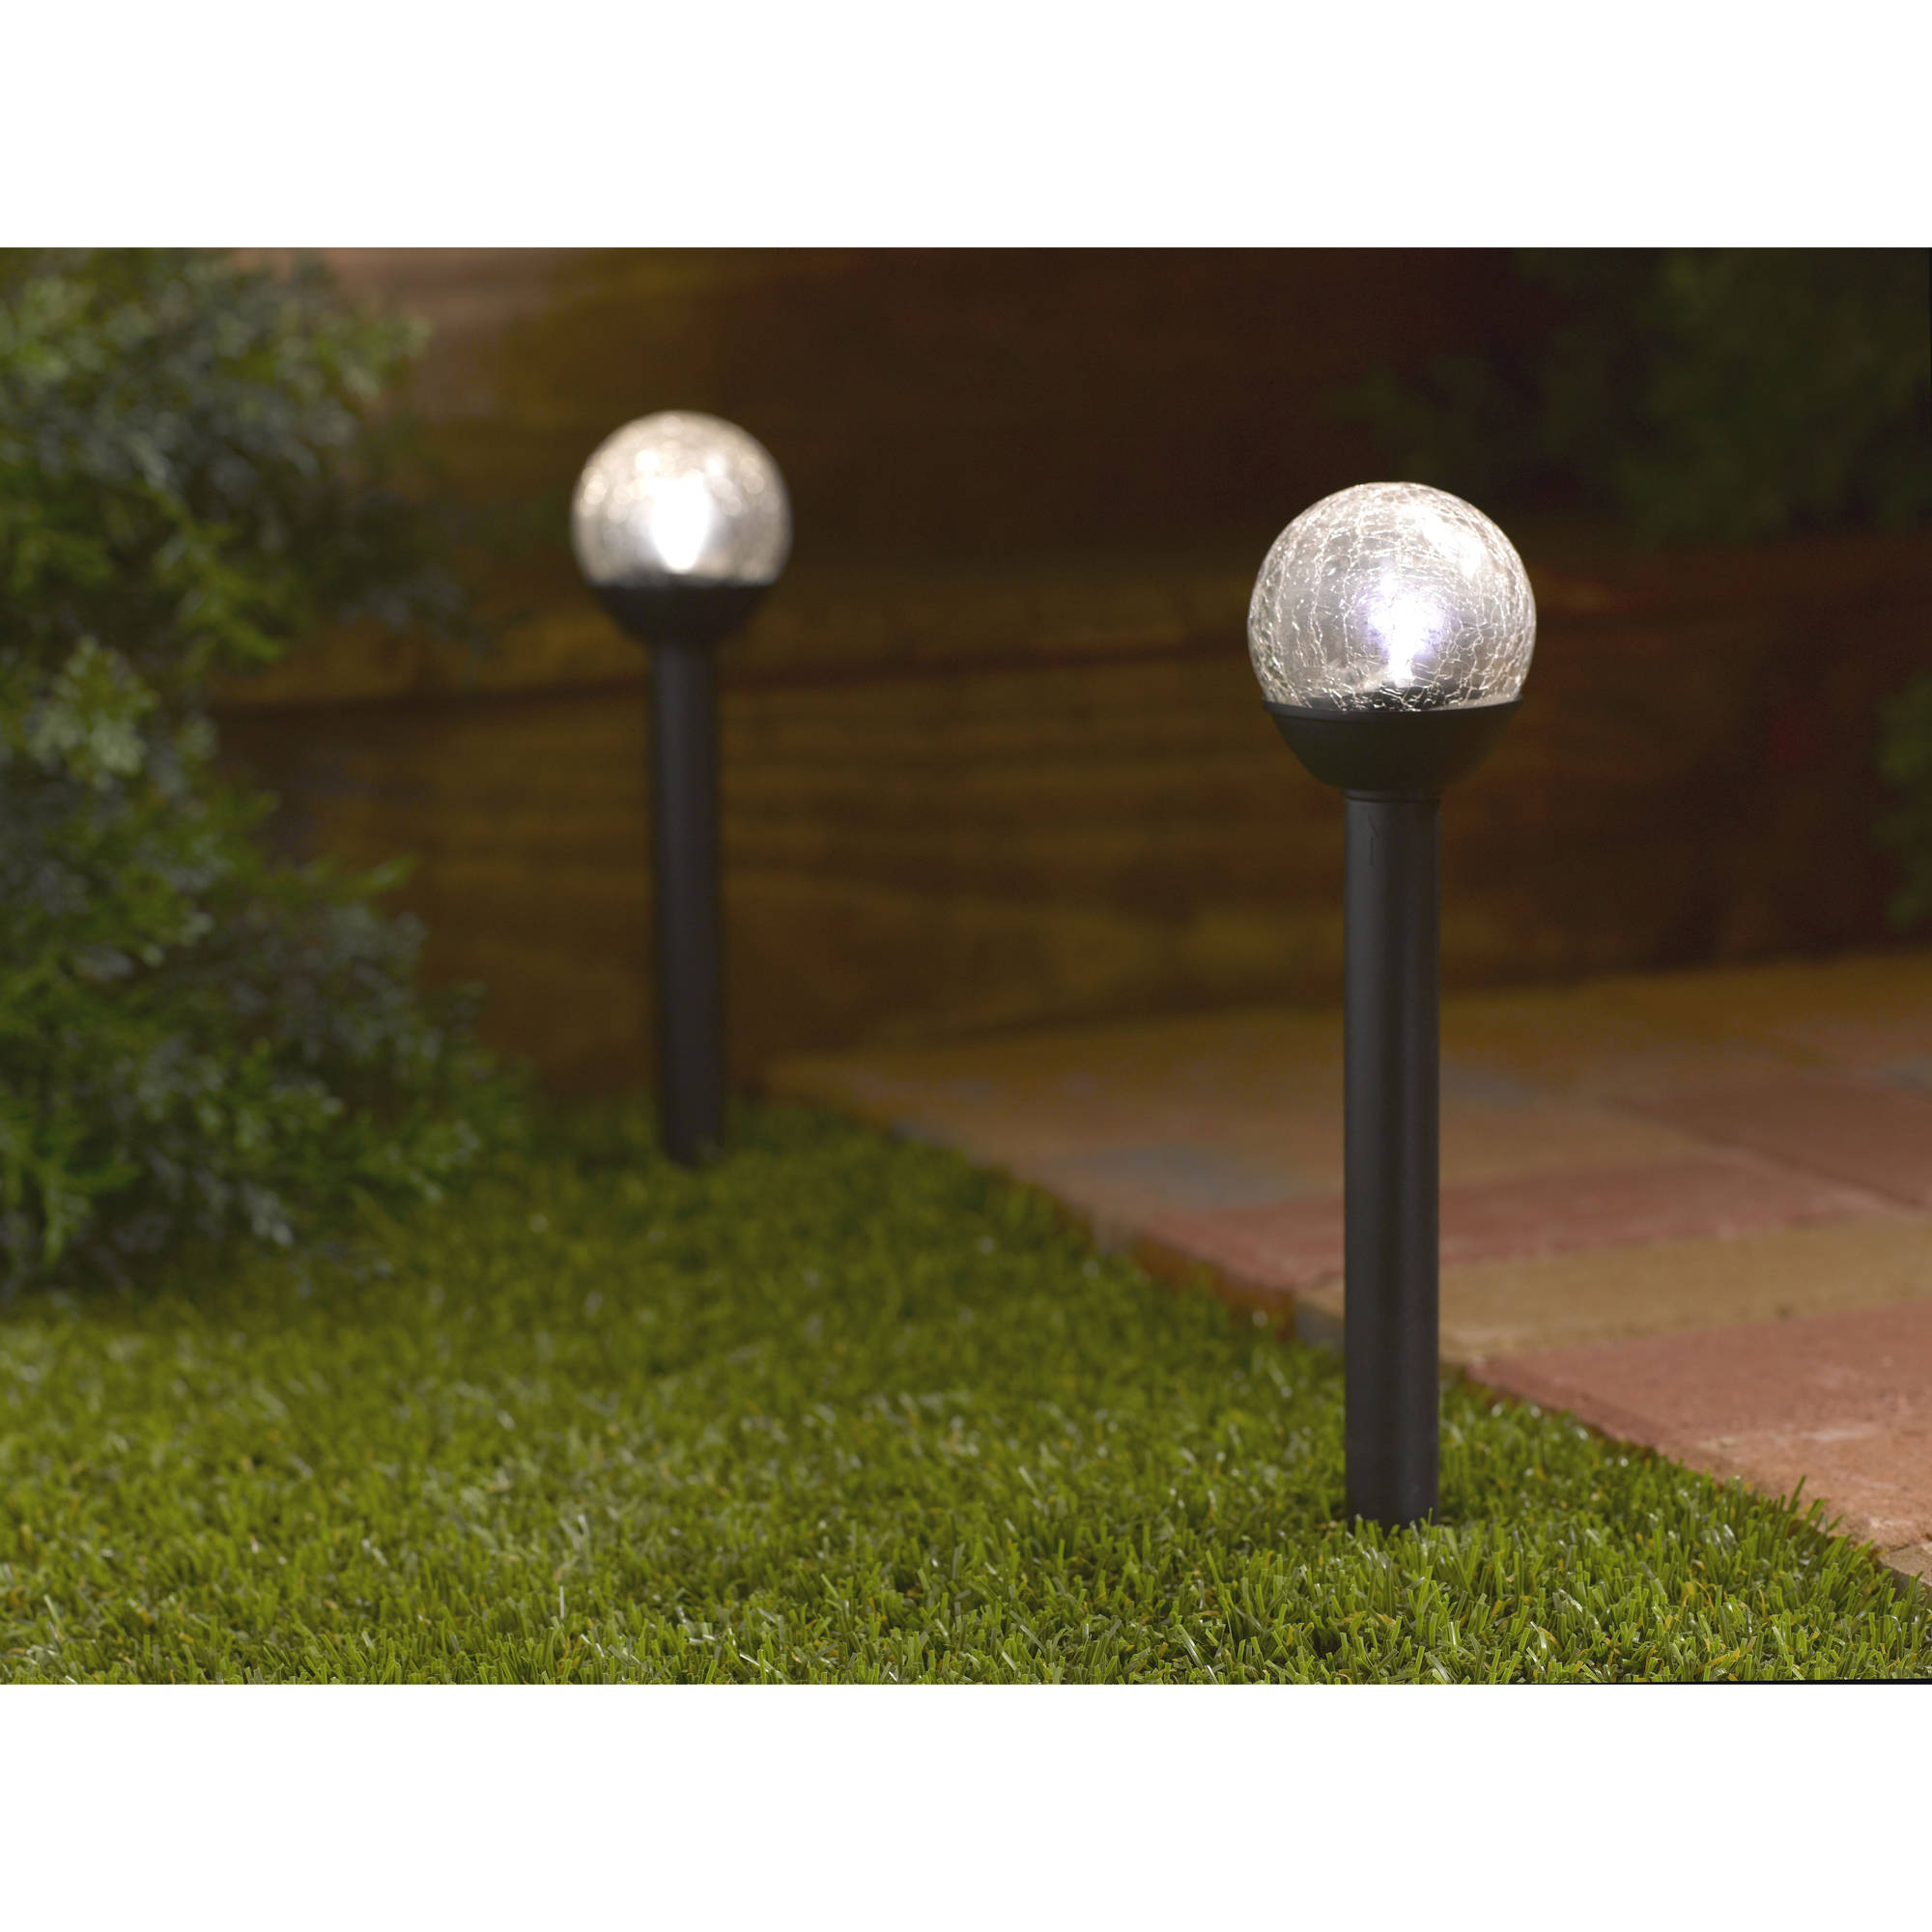 Genial Mainstays Petite Crackle Ball Solar Powered Landscape Light, Natural White  LED Light   Walmart.com